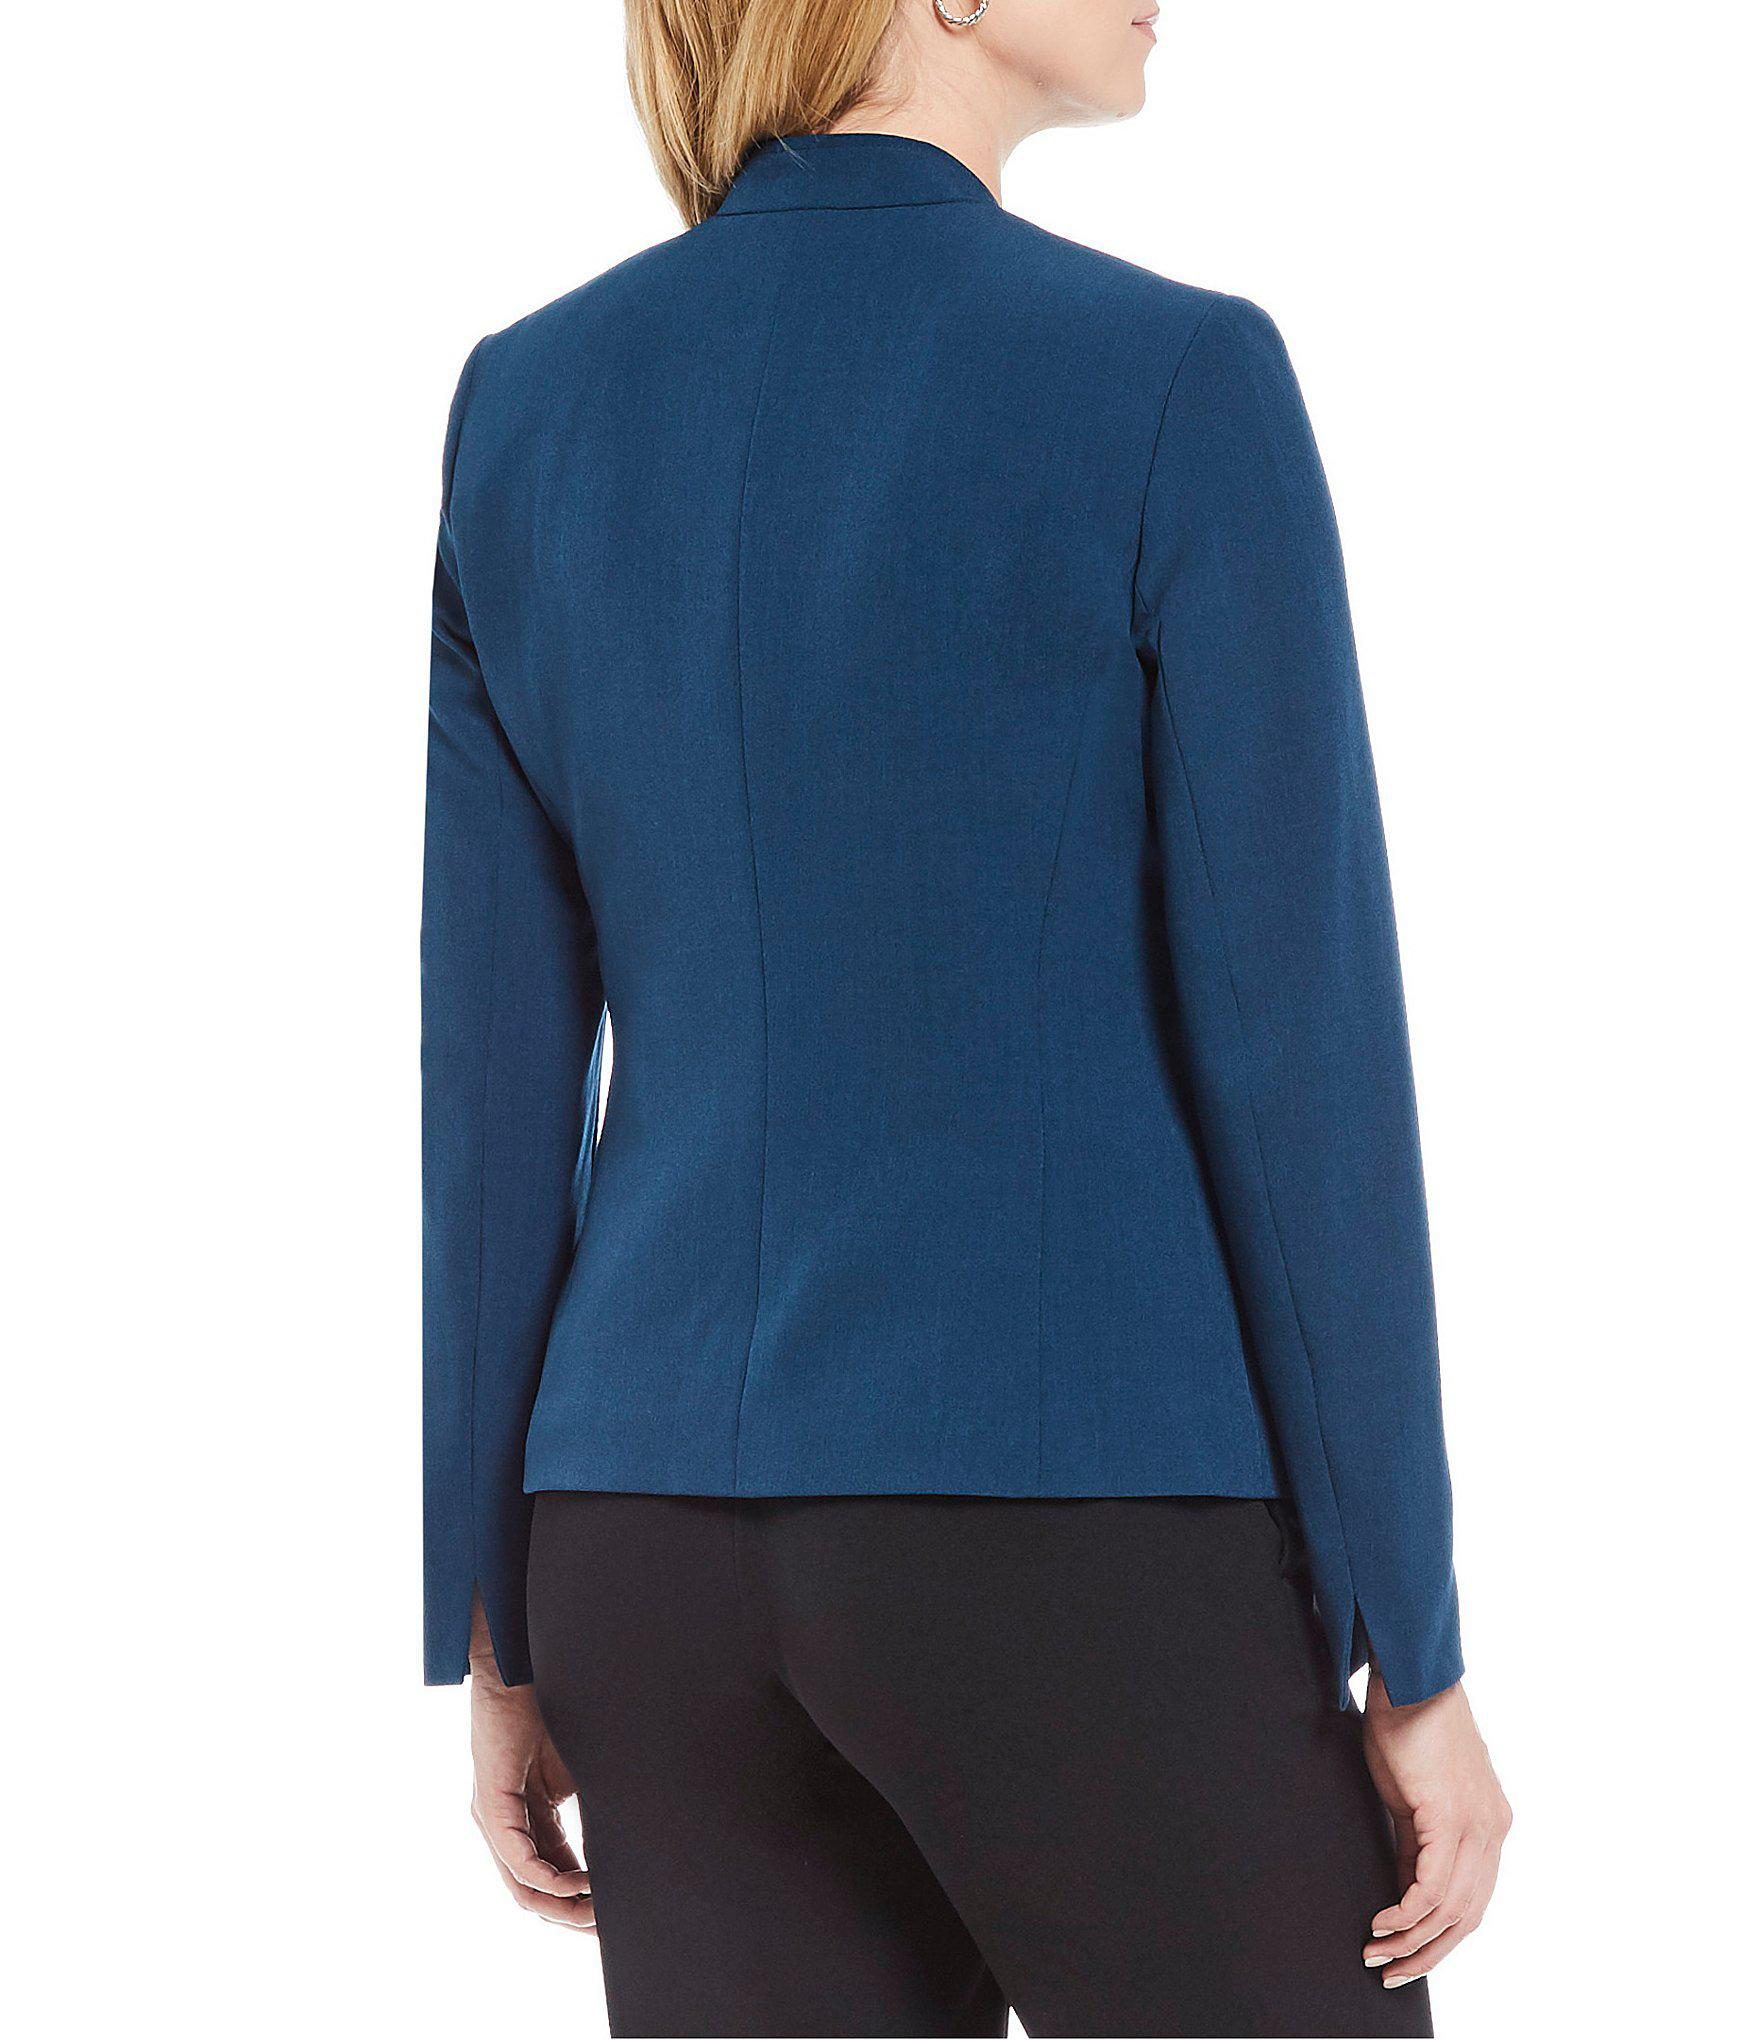 0493074e2d5 Kasper - Blue Stretch Crepe Stand Collar Jacket - Lyst. View fullscreen